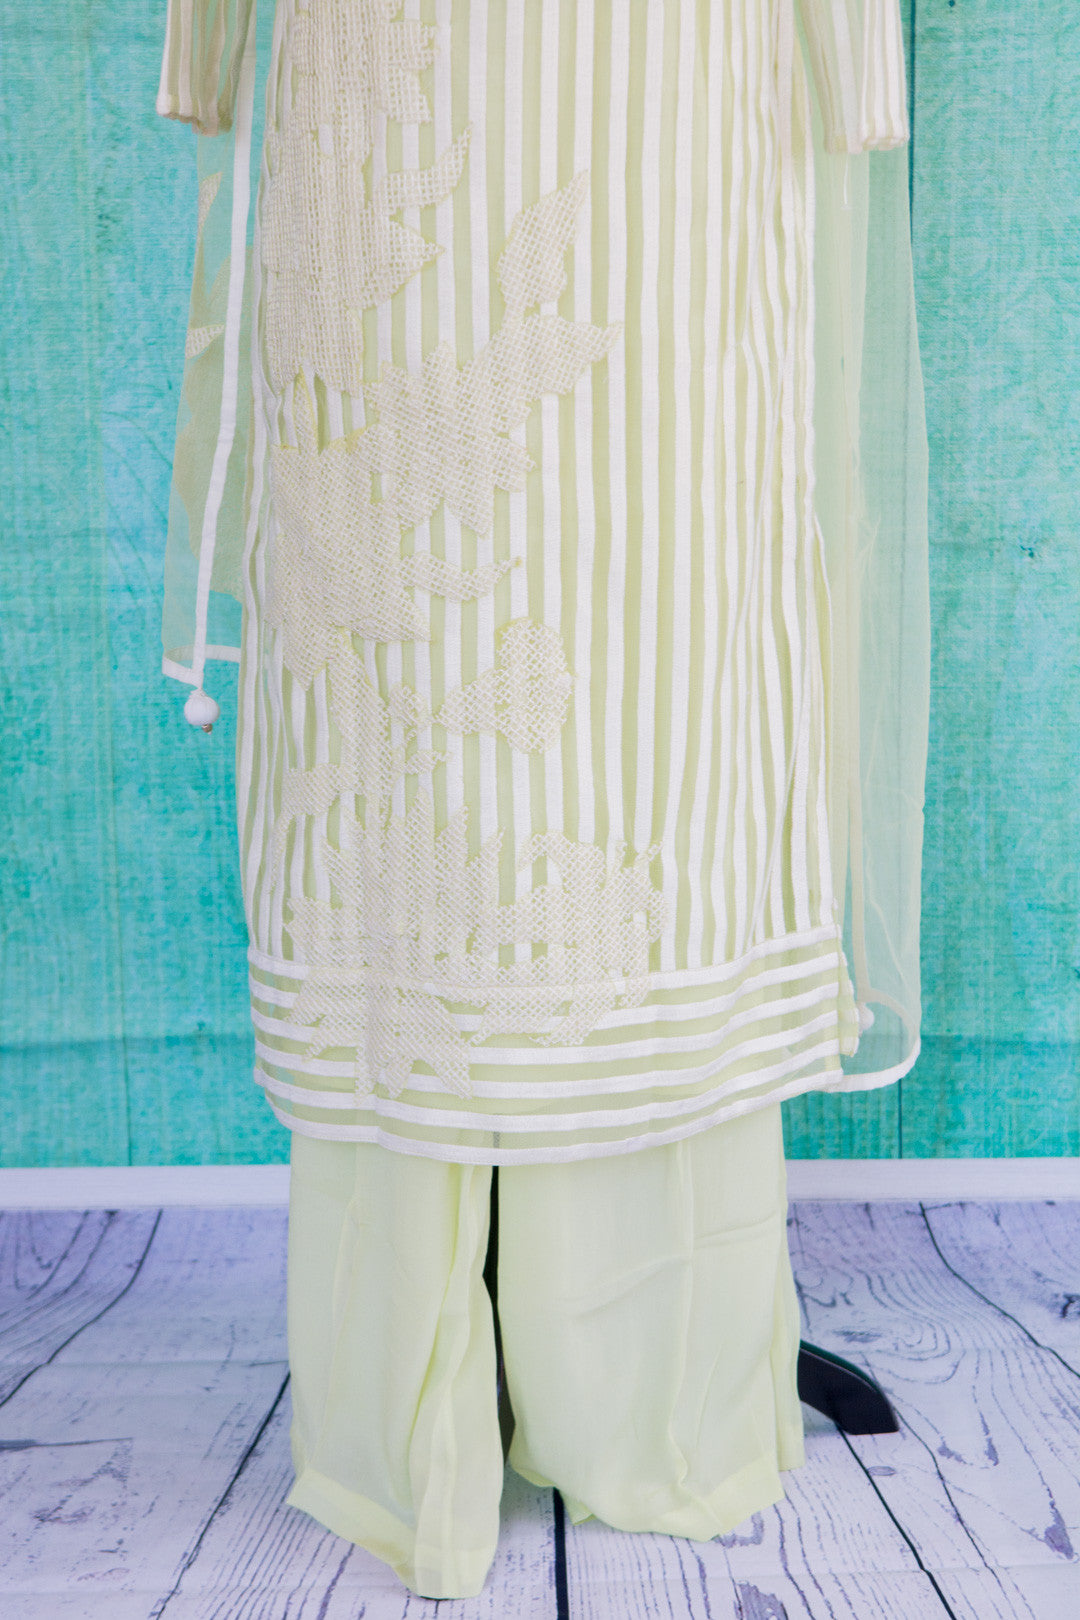 501073-suit-long-sleeve-pale-green-white-striped-scarf-skirt-view